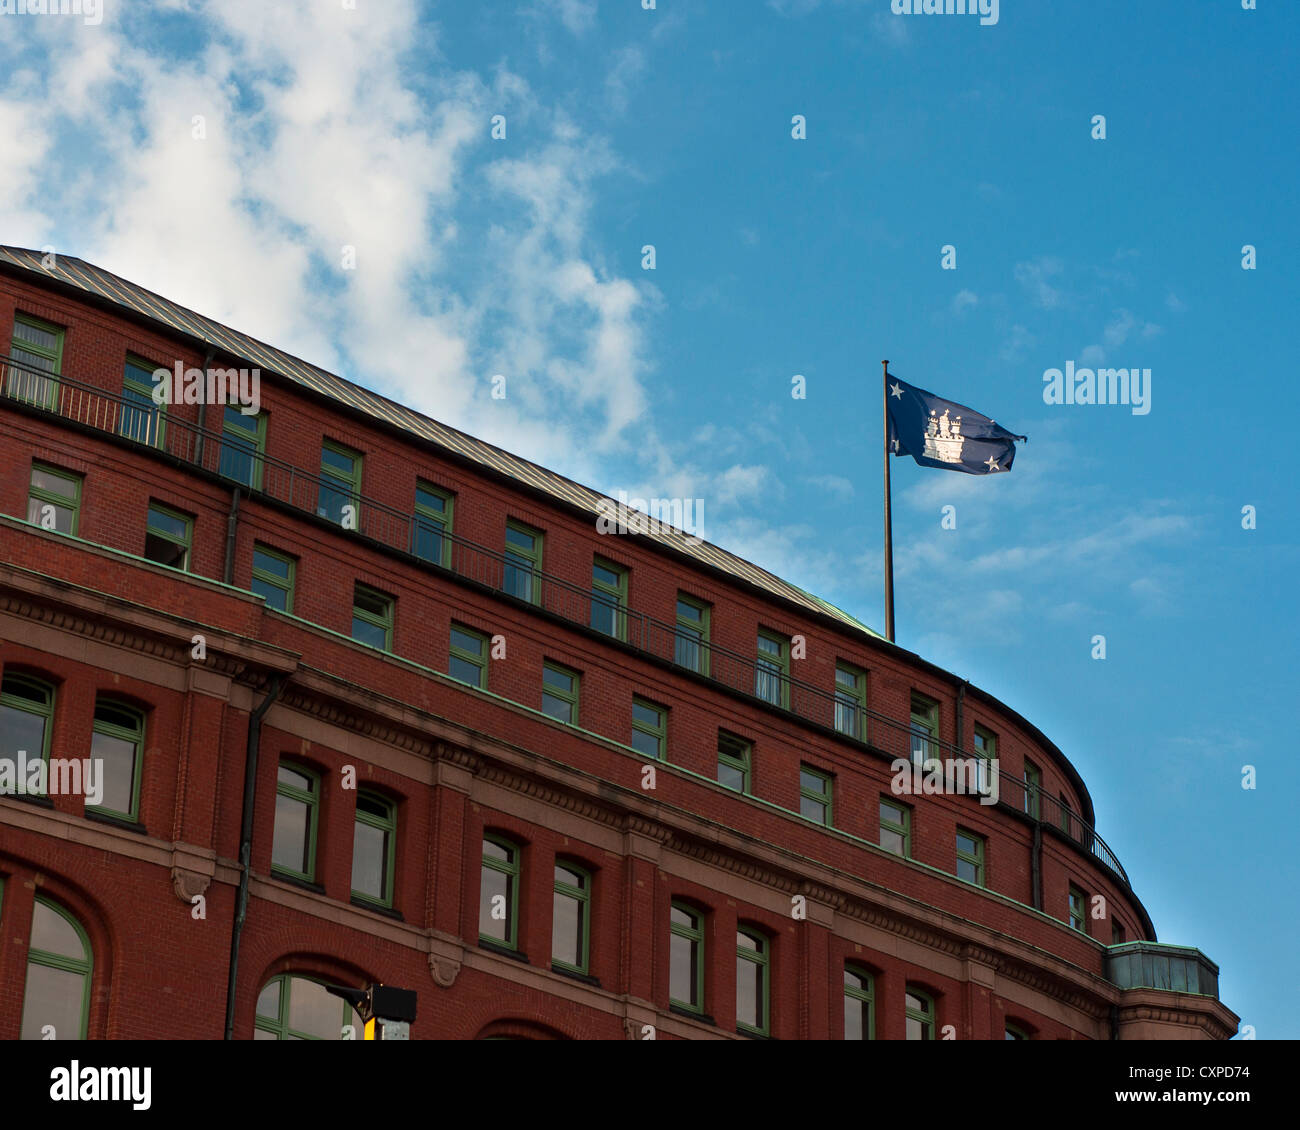 Flag of Free and Hanseatic City of Hamburg (Freie und Hansestadt Hamburg), flying and wavering high on the building. Stock Photo